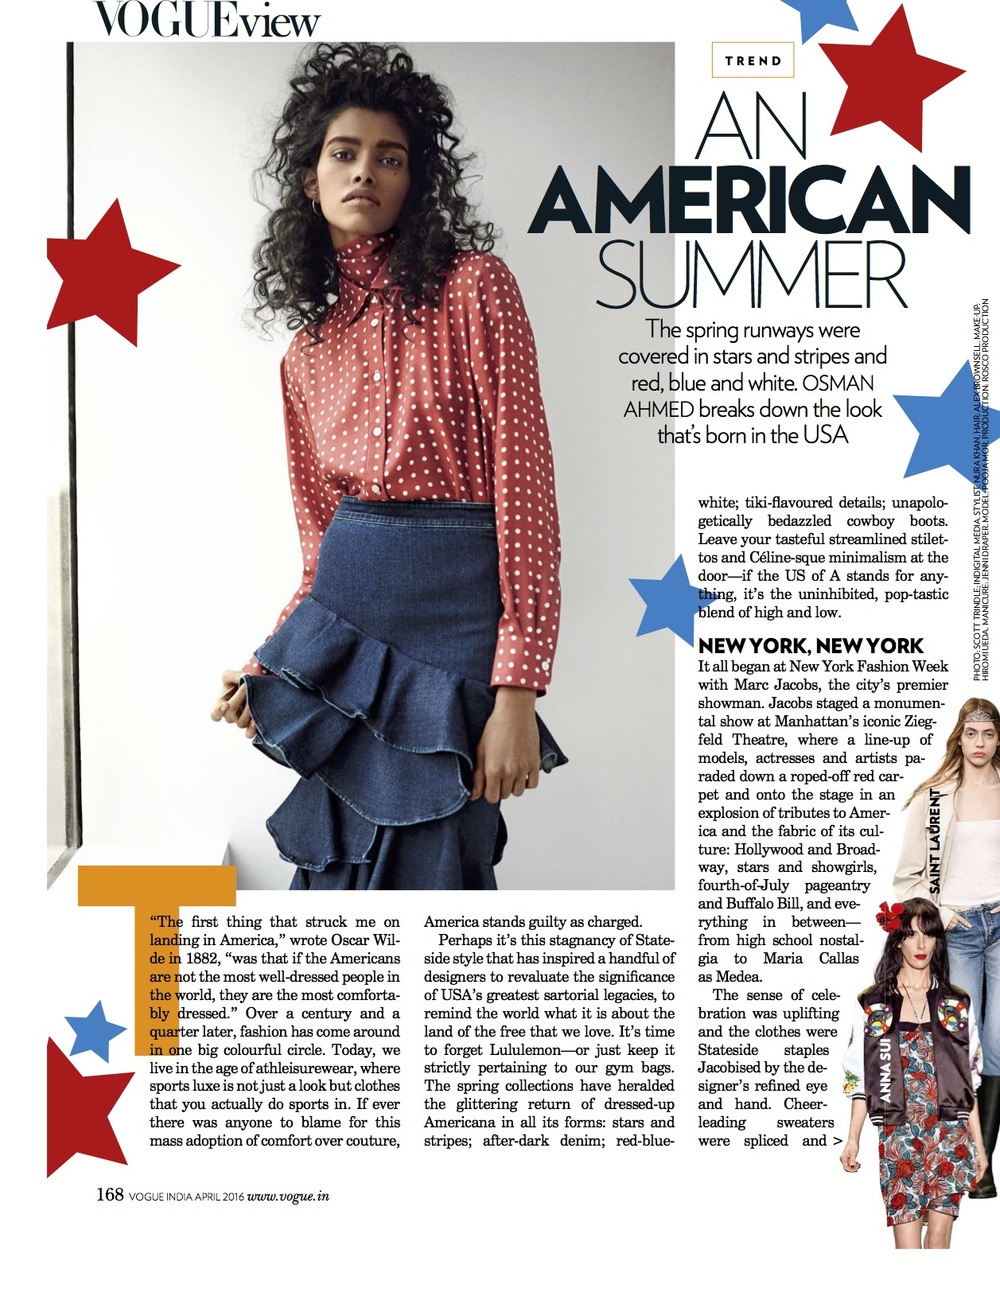 An American Summer, Vogue India